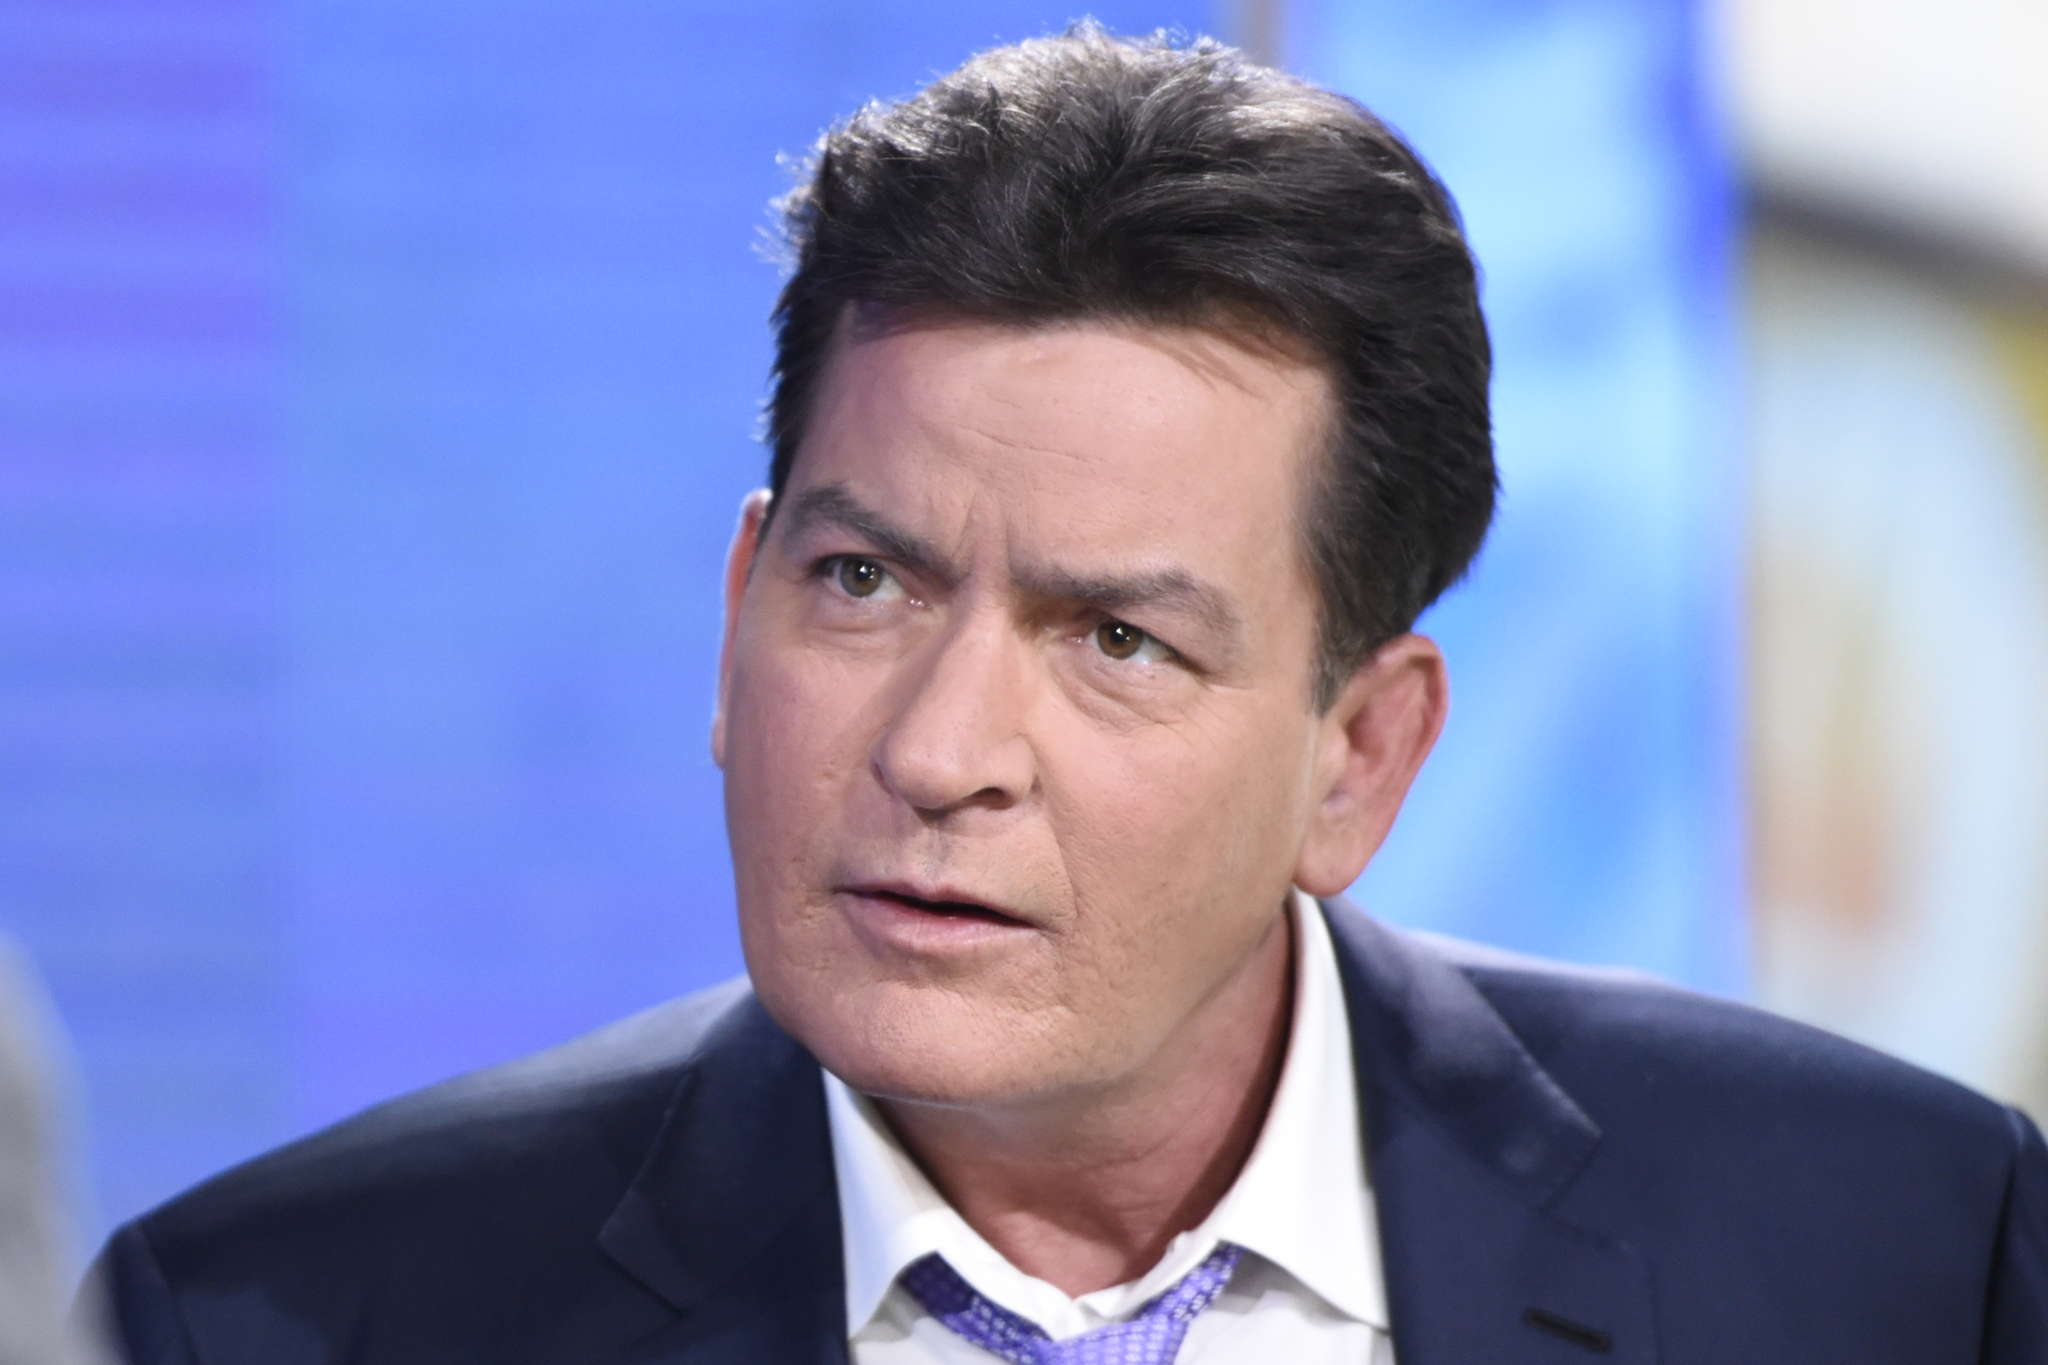 Charlie Sheen has been sued by a former lady friend.